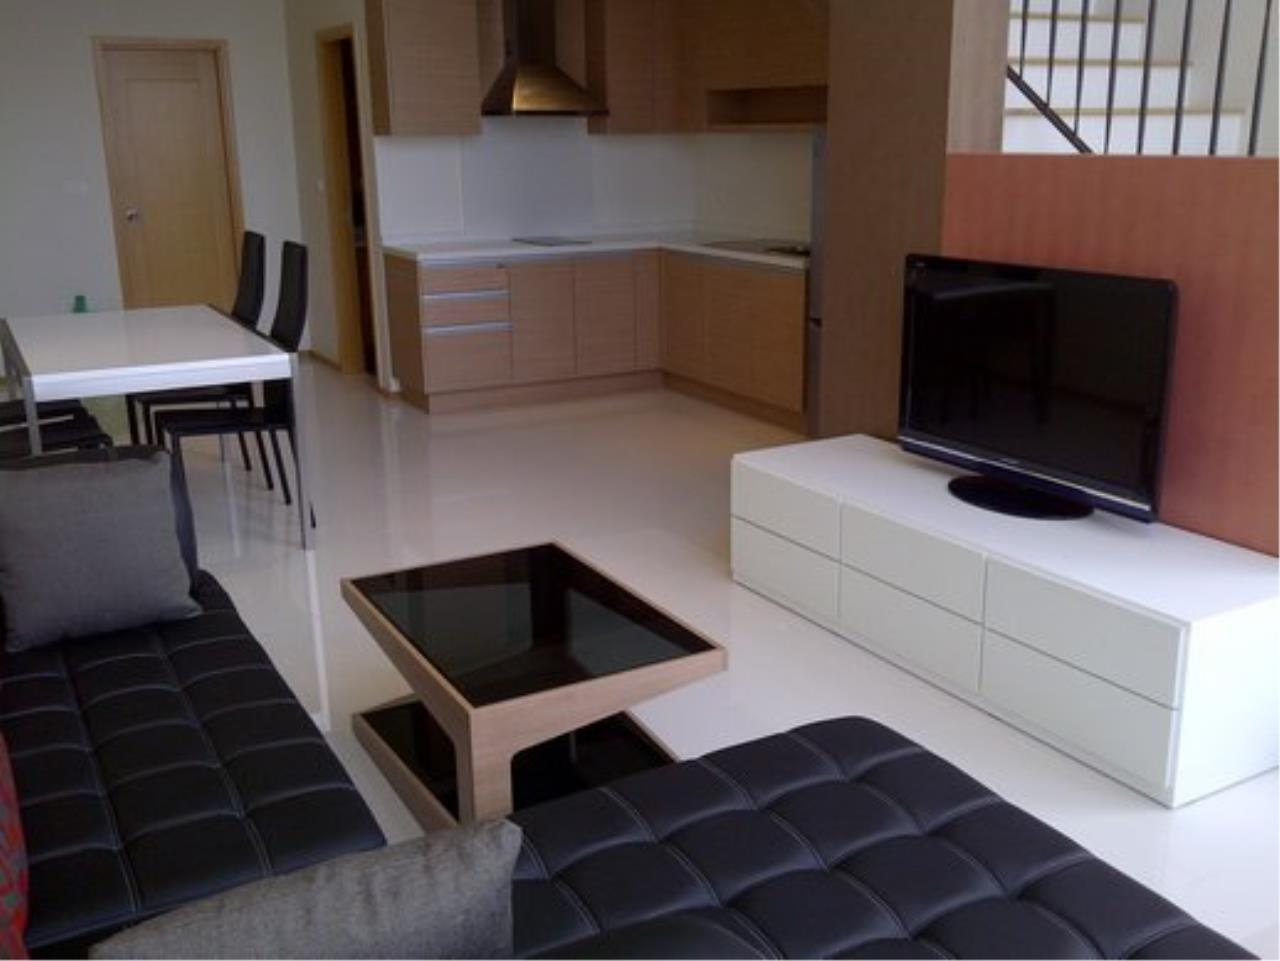 Piri Property Agency's Duplex 1 Bedroom Condo in the Emporio Place building for rent on high floor 2